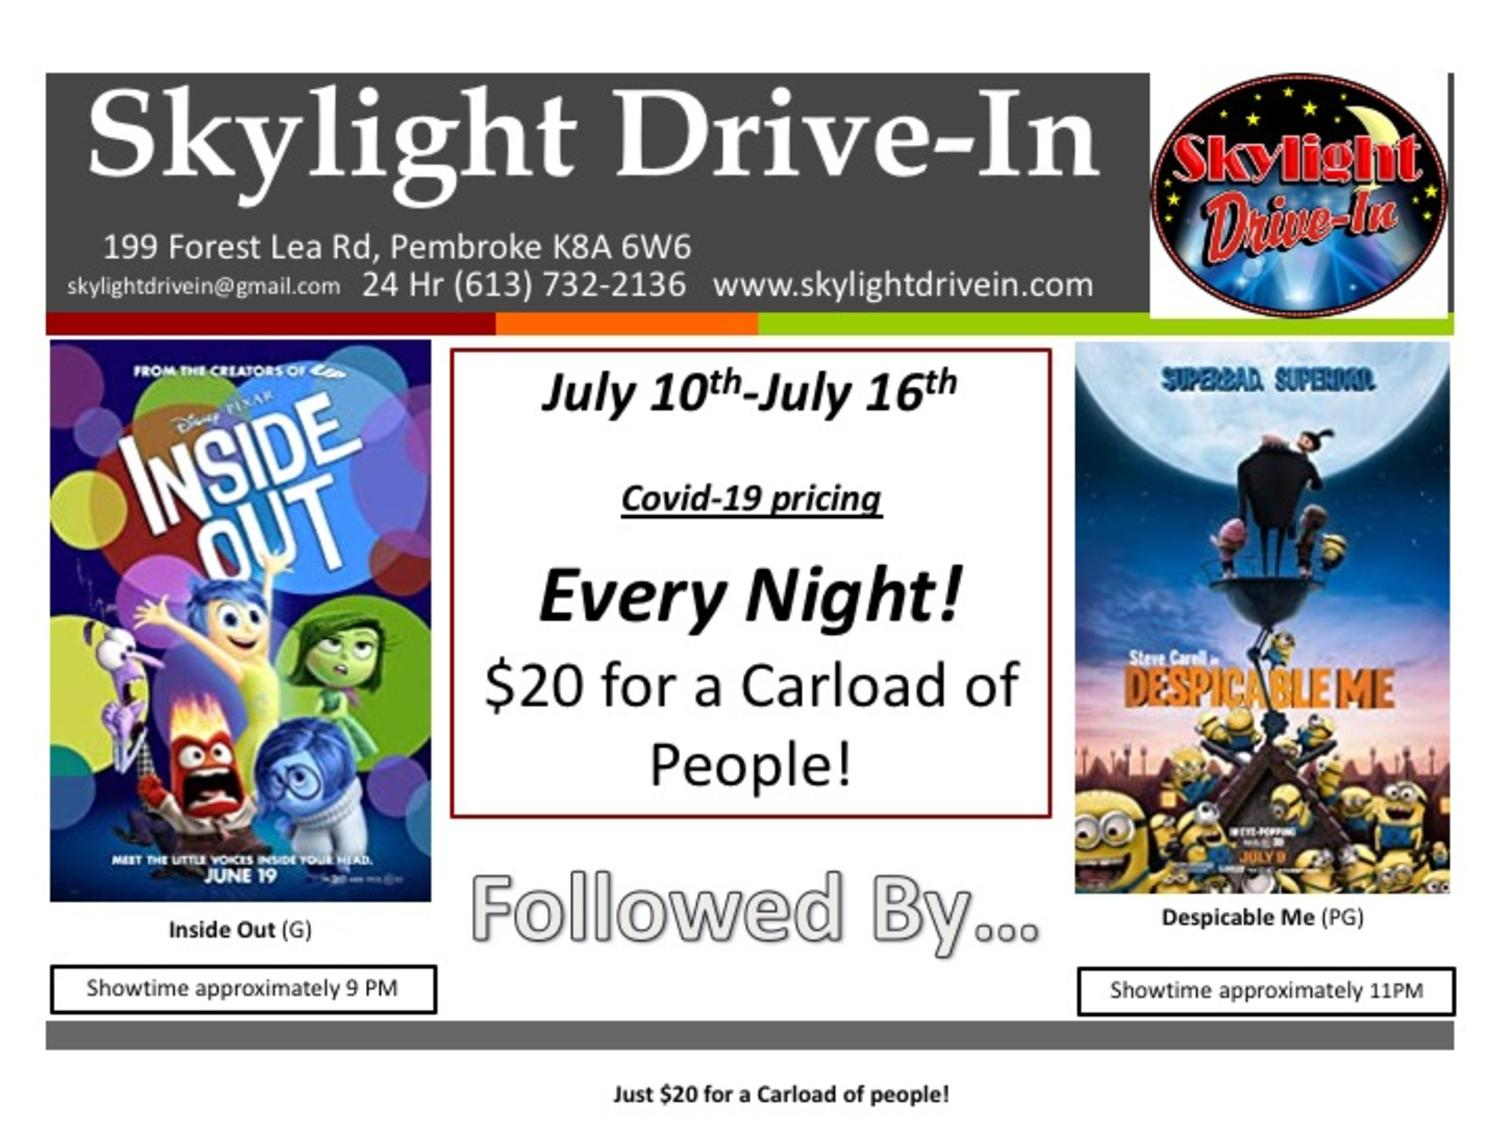 Skylight Drive-In featuring Inside Out followed by Despicable Me